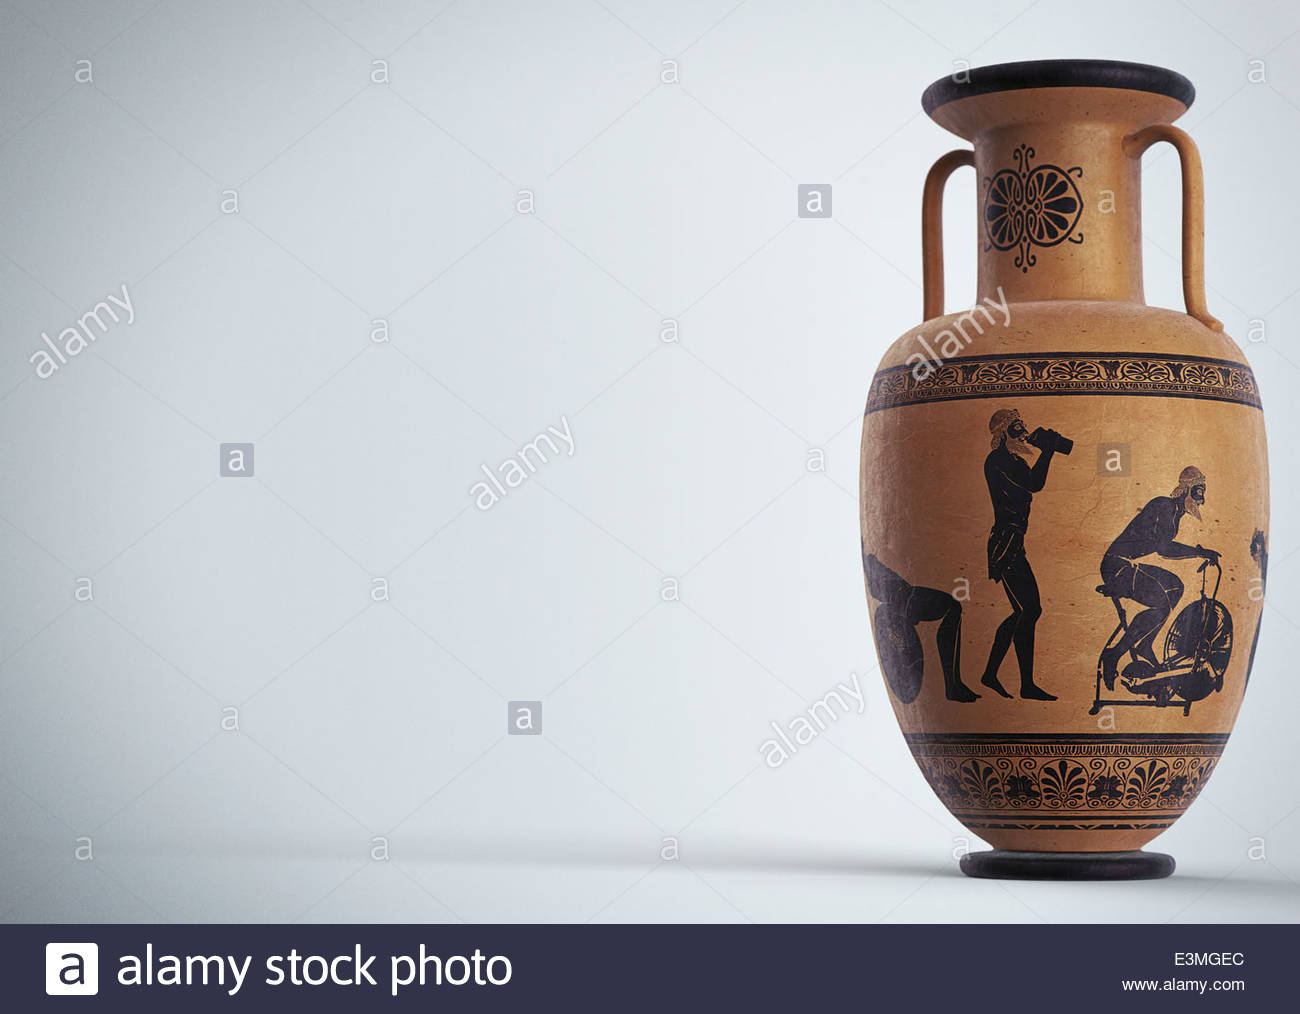 Images of man and modern exercise equipment on ancient Greek urn - Stock Image